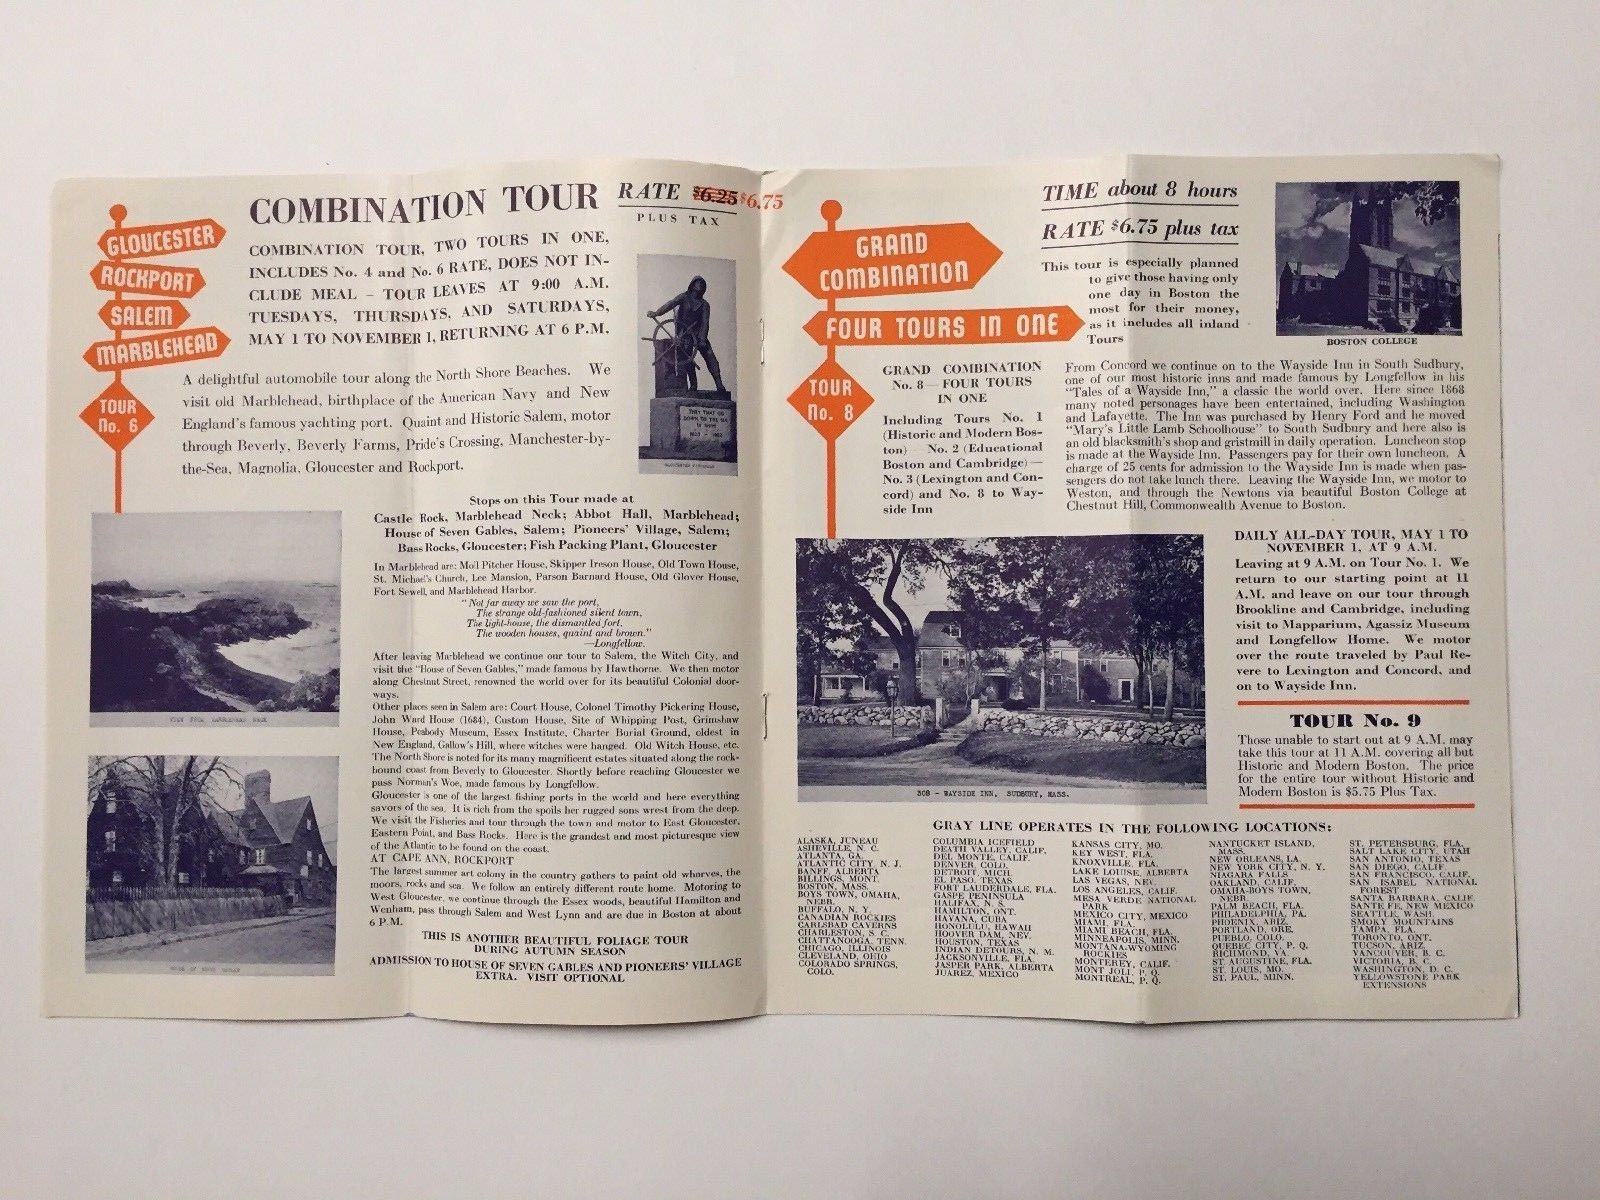 Seeing Boston The Gray Line Greyhound 1951 Travel Brochure & Map Tri-State